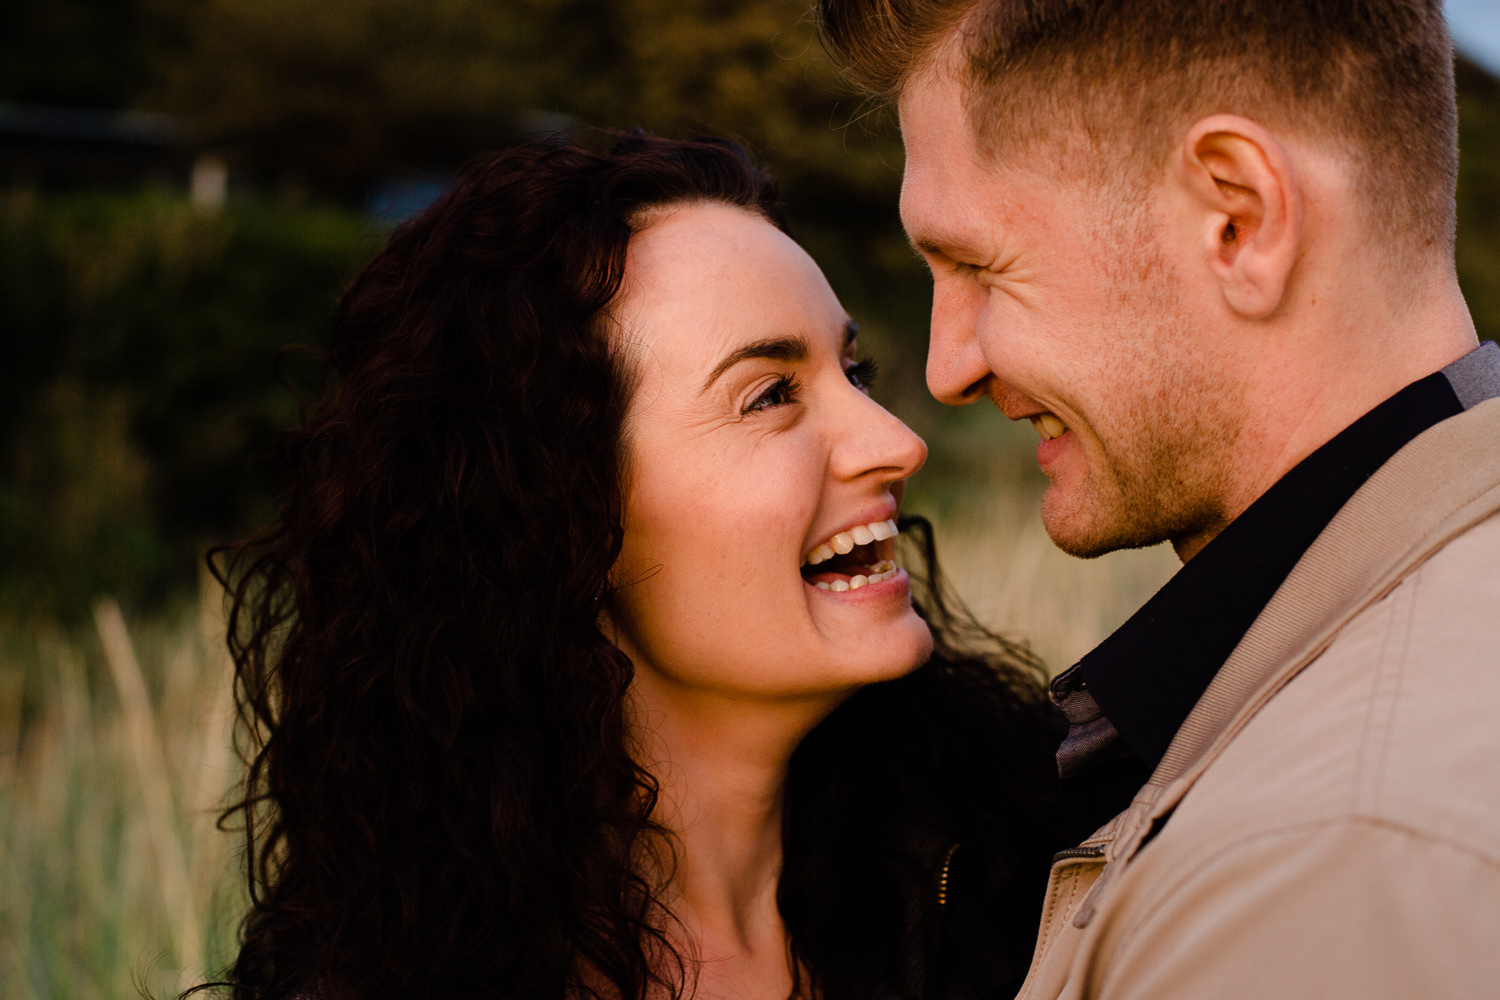 A couple looking at each other and laughing together